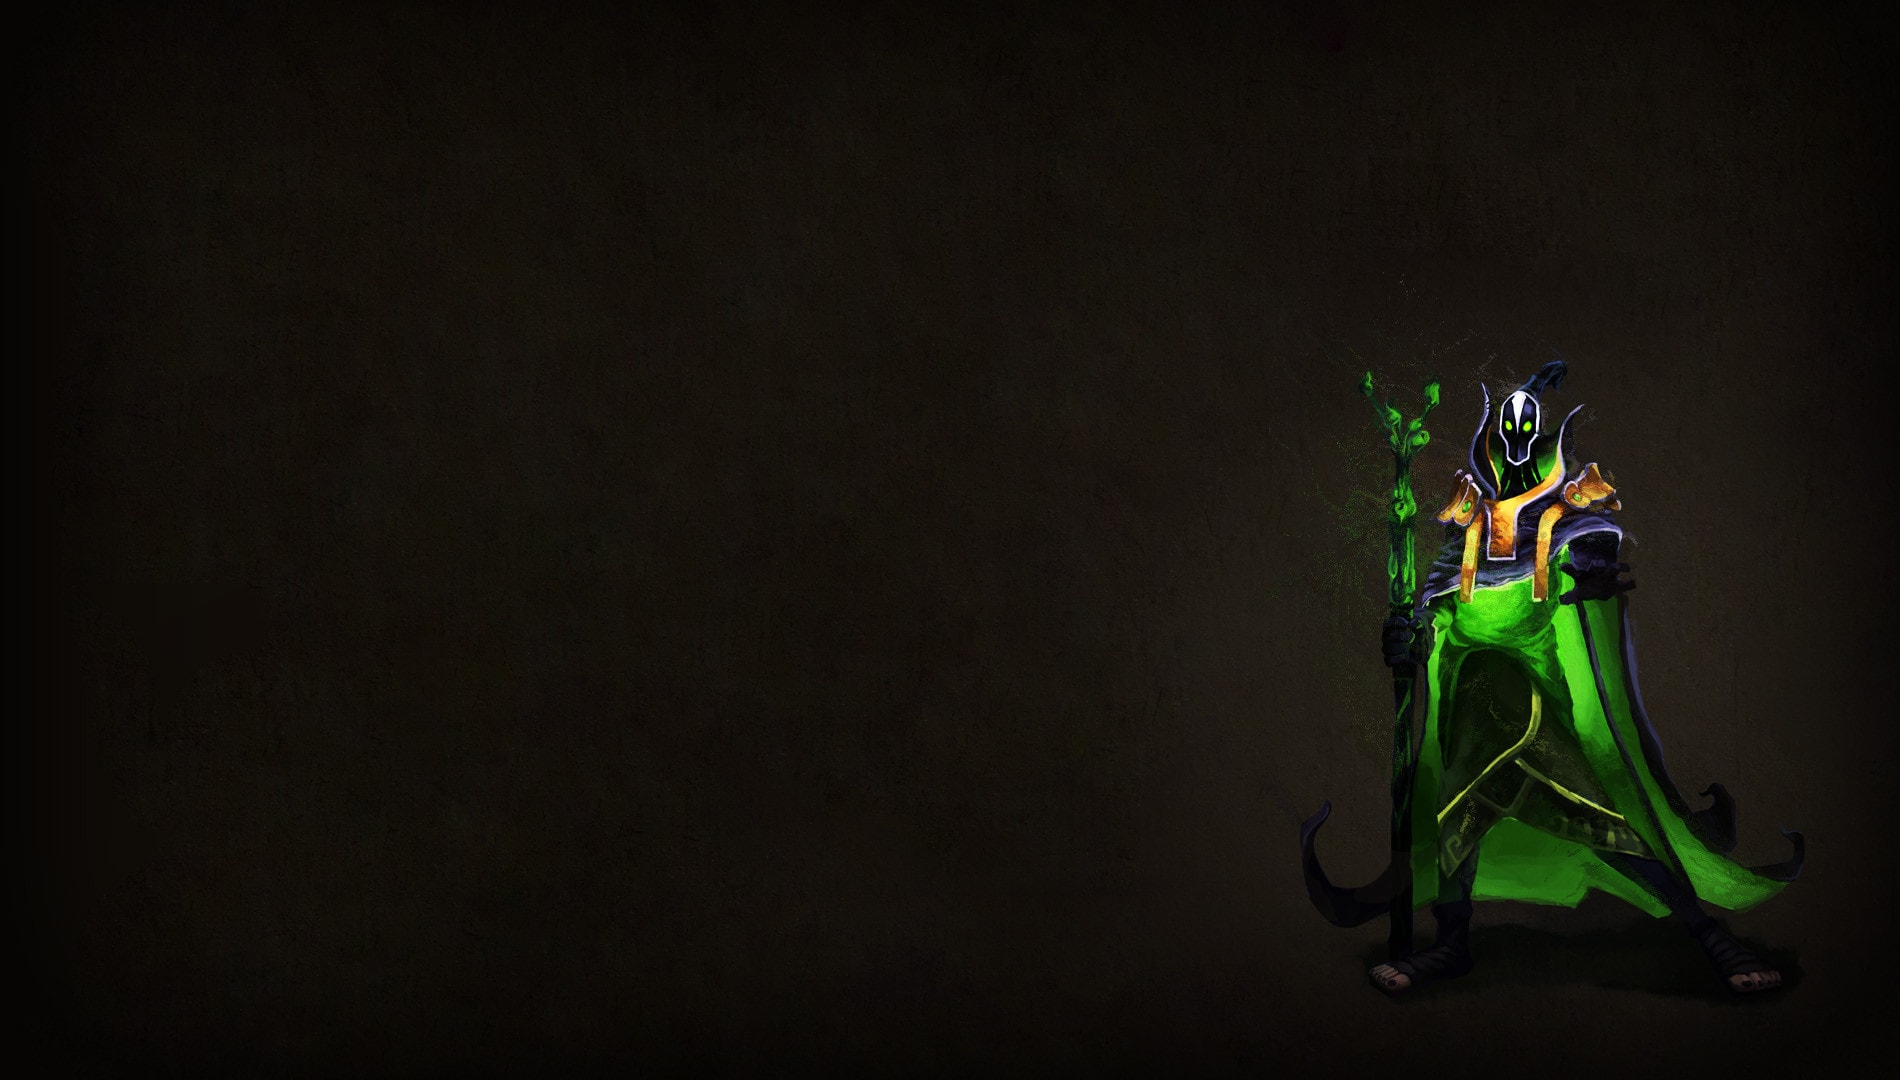 Dota2 : Rubick widescreen for desktop